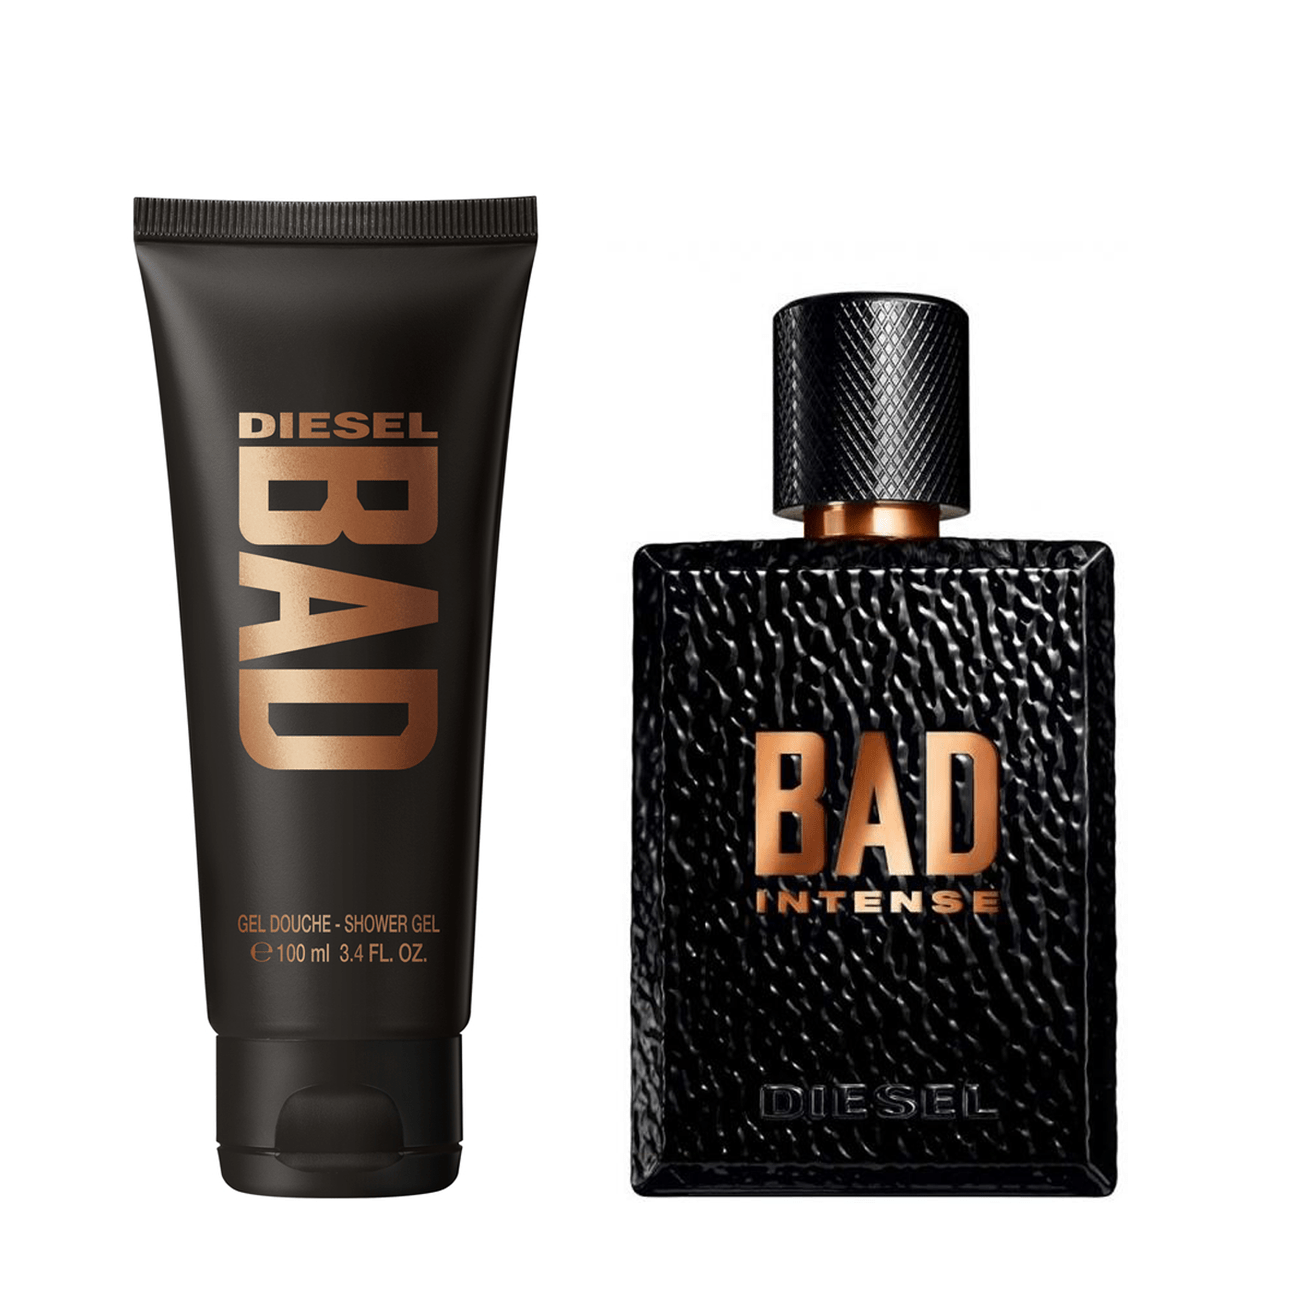 Bad Diesel Set Diesel Bad Set 150ml Seturi Parfumuri